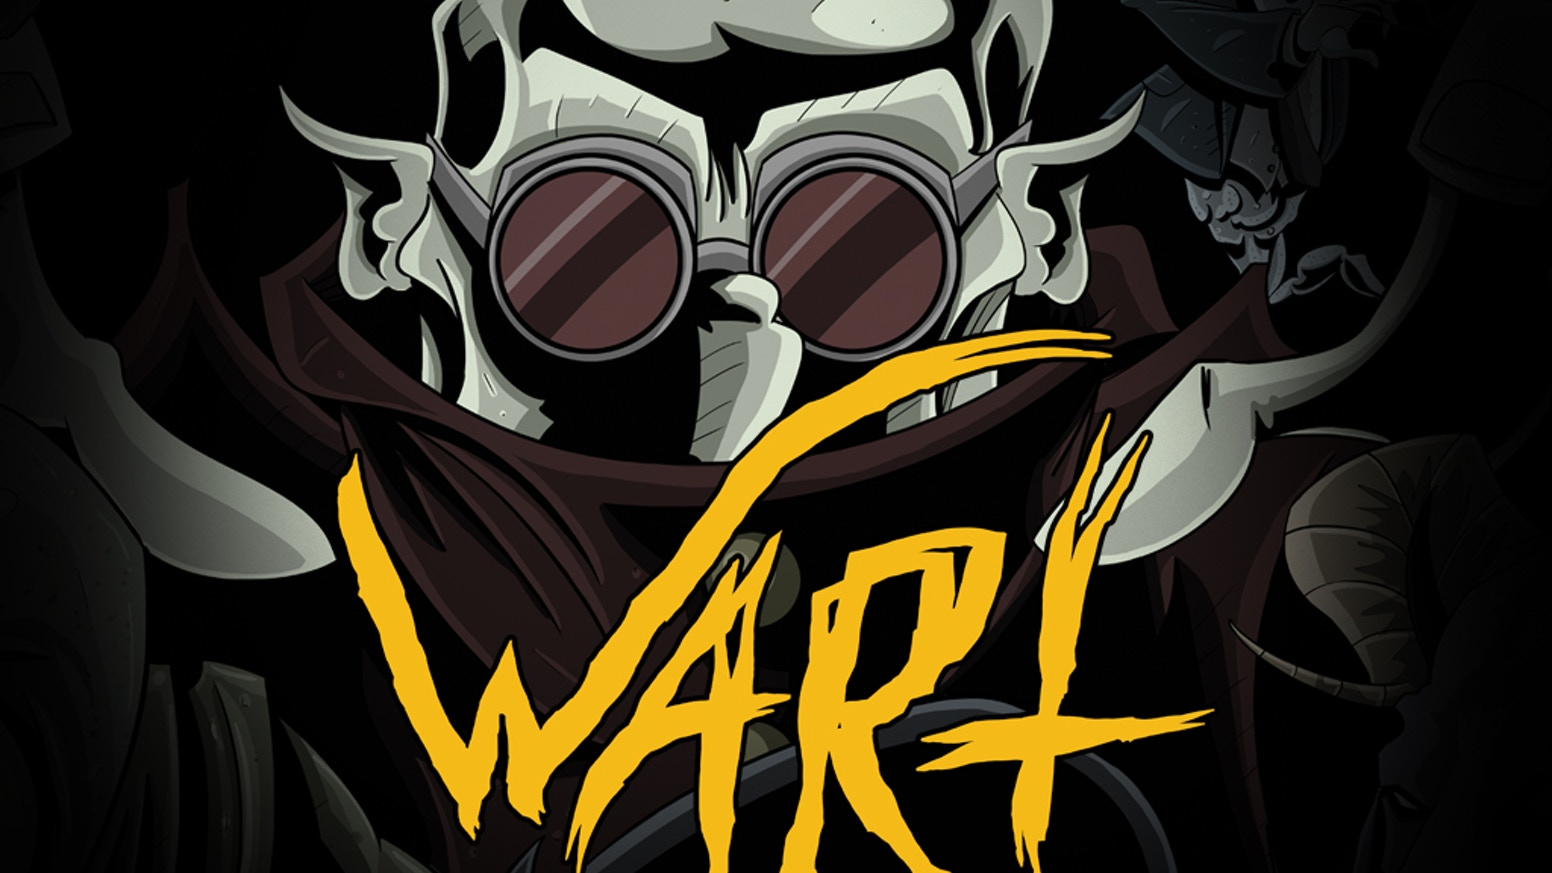 In January we successfully funded books 1&2. Now we're back with Book 3 of WART - the Lovecraft-inspired cosmic horror comic!